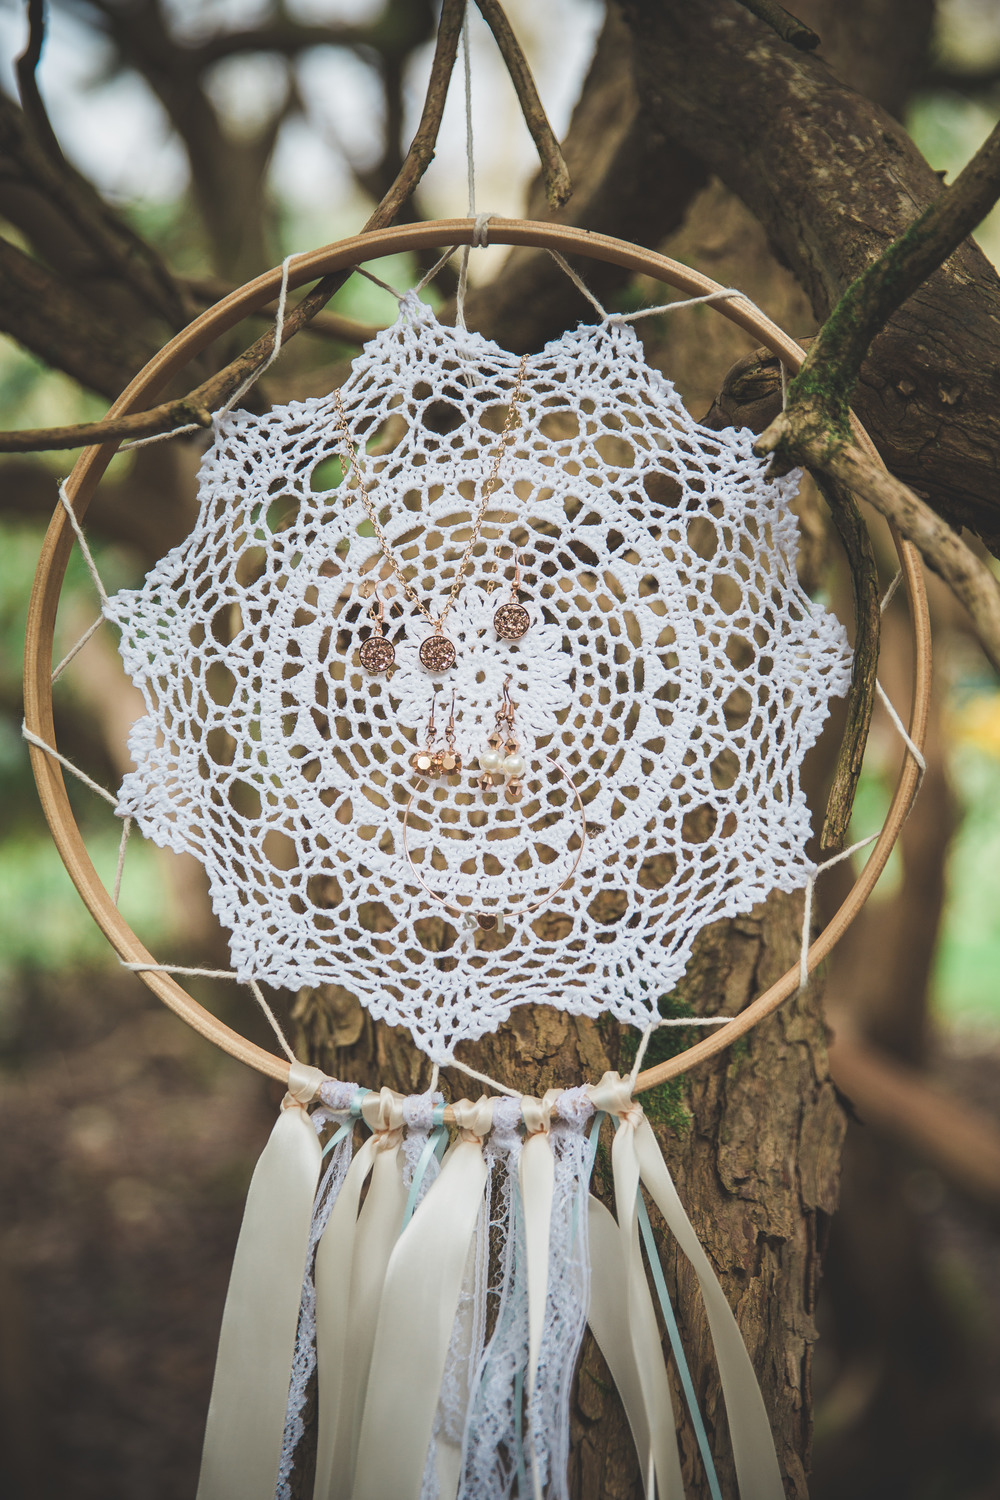 Dreamcatcher collection, LG Designs, bridal hair accessories, image - Tandem Photography